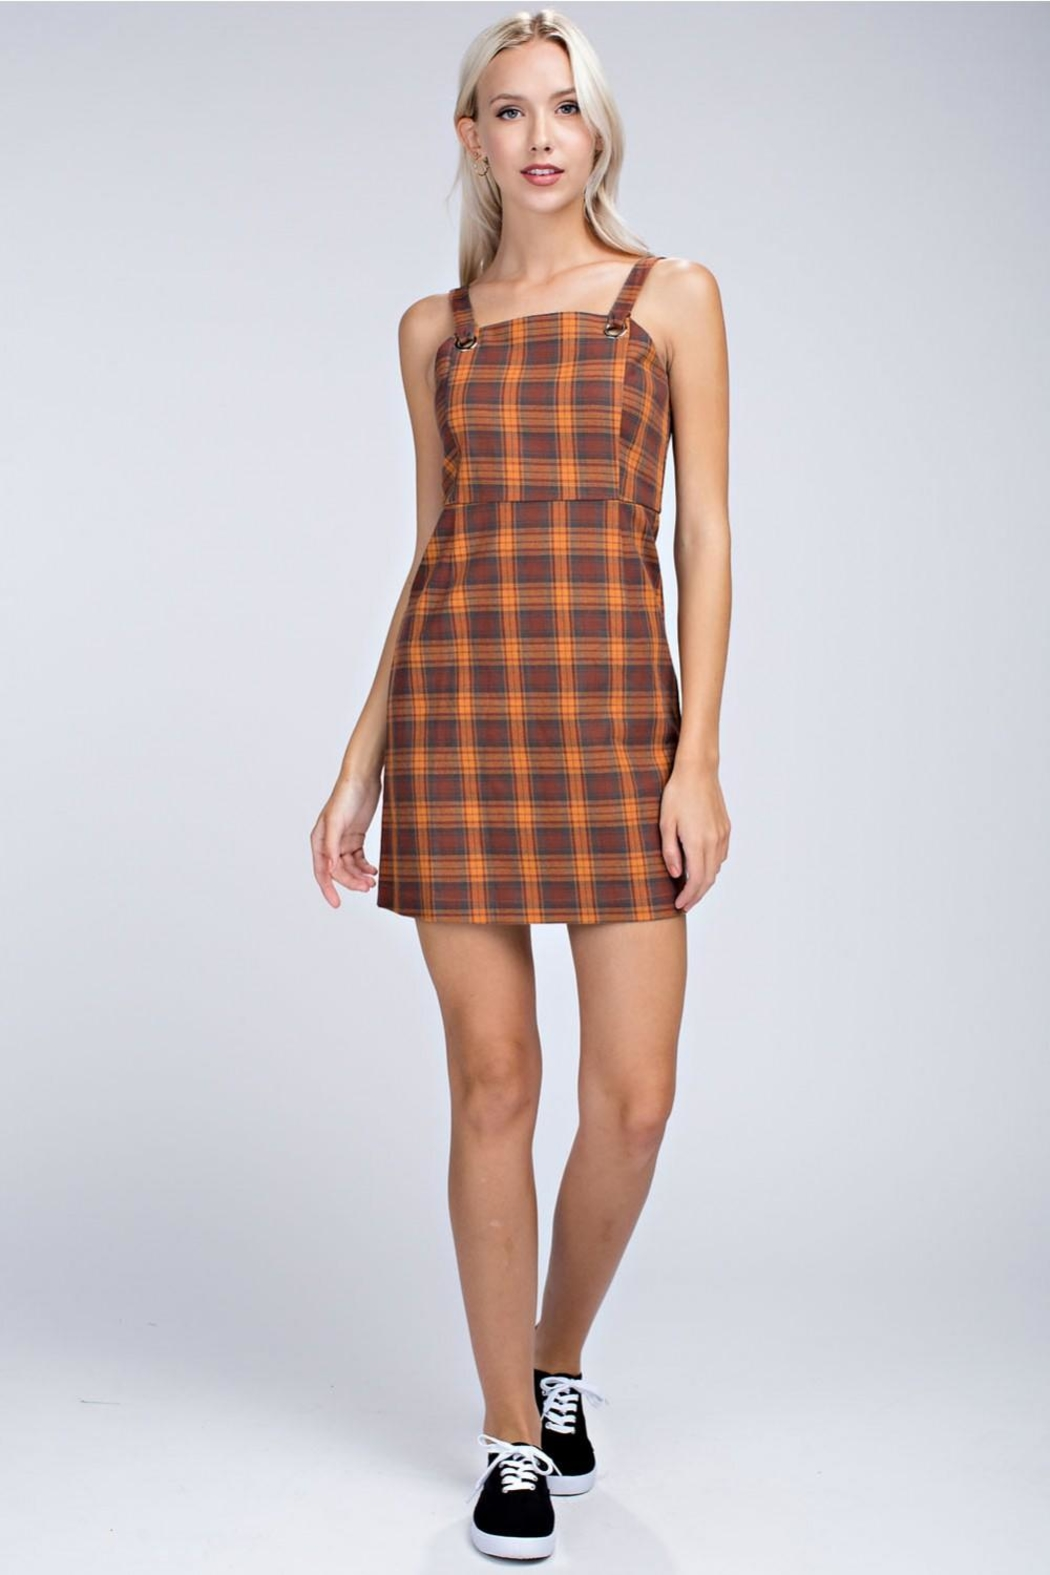 Honey Punch Plaid Overall Dress - Main Image